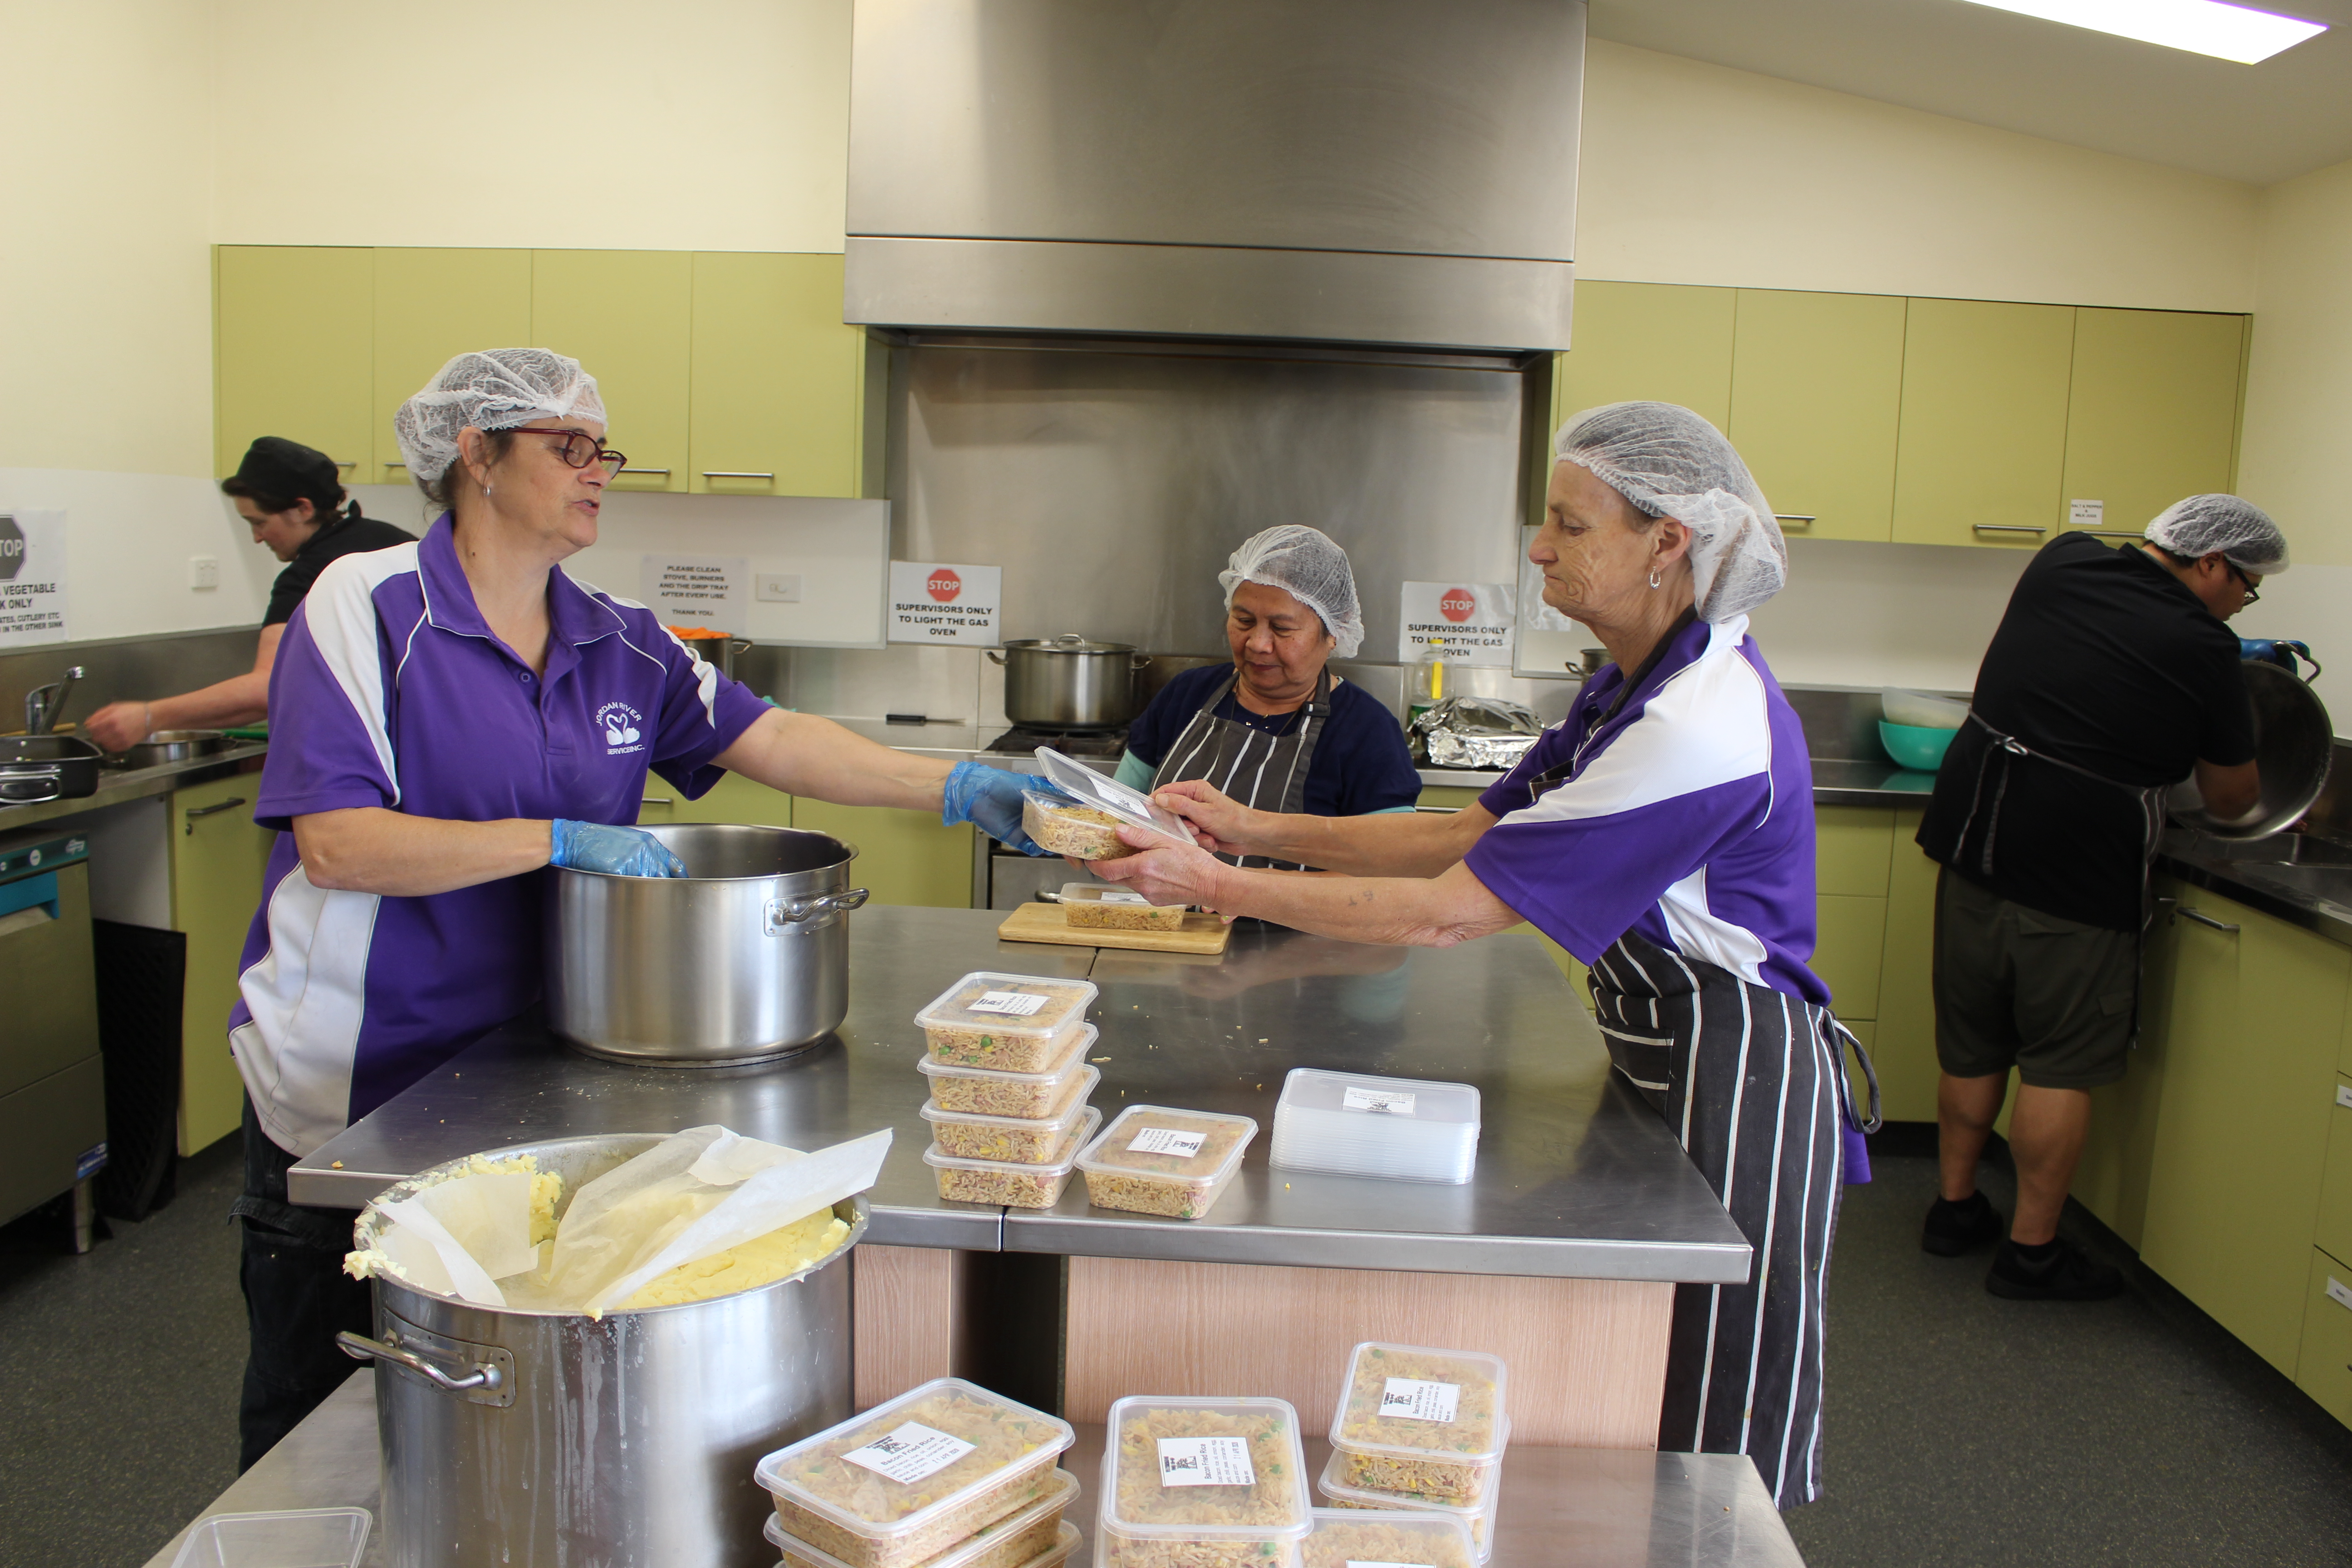 •Tanya Langdon, Lillia Figgel, Cindy Dowling work to get food packed and ready for freezing and delivery.